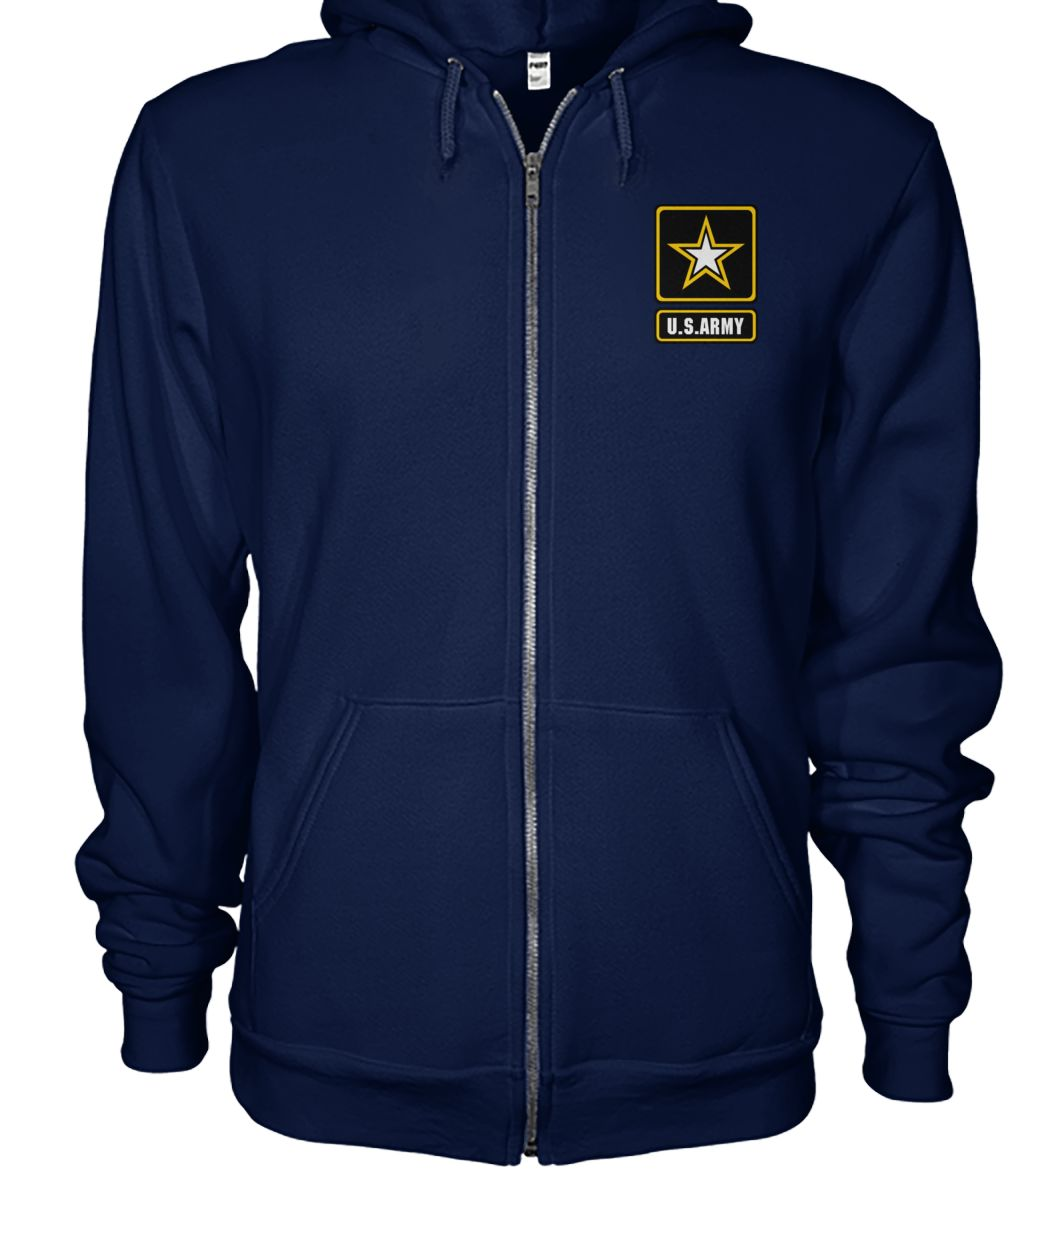 U.S ARMY ALL GAVE SOME, SOME GAVE ALL V3.0 HOODIES wp